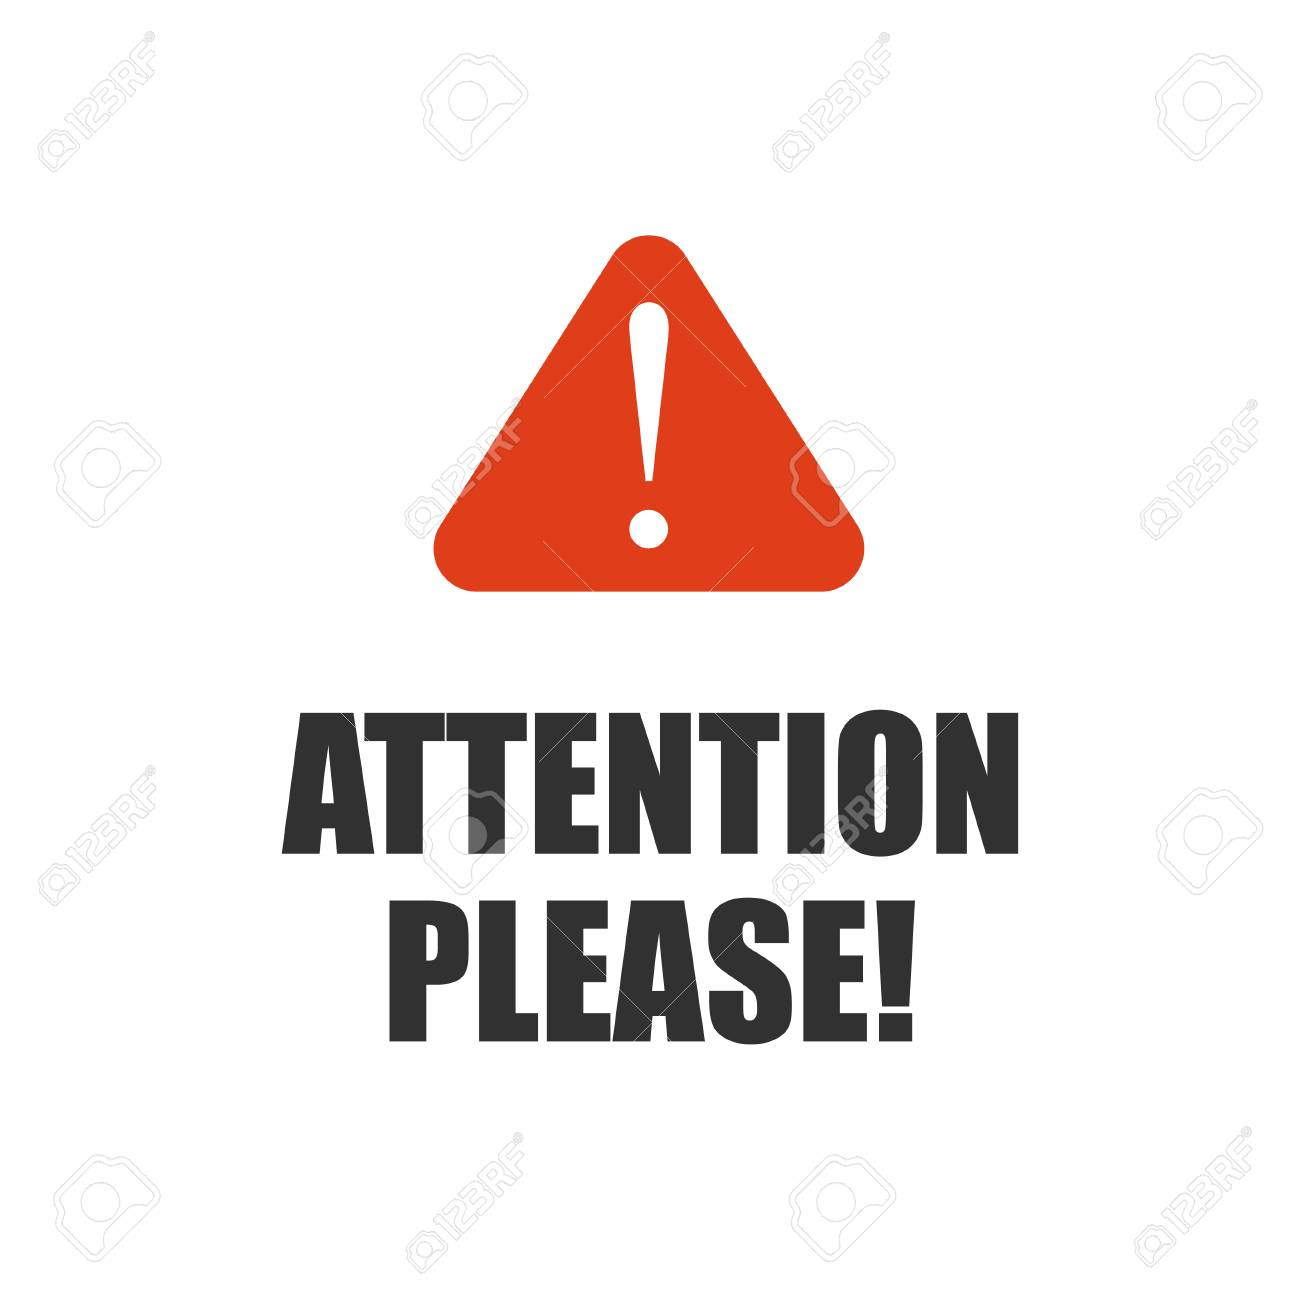 Attention please, important message badge or banner on isolated background. Vector. - 90945968